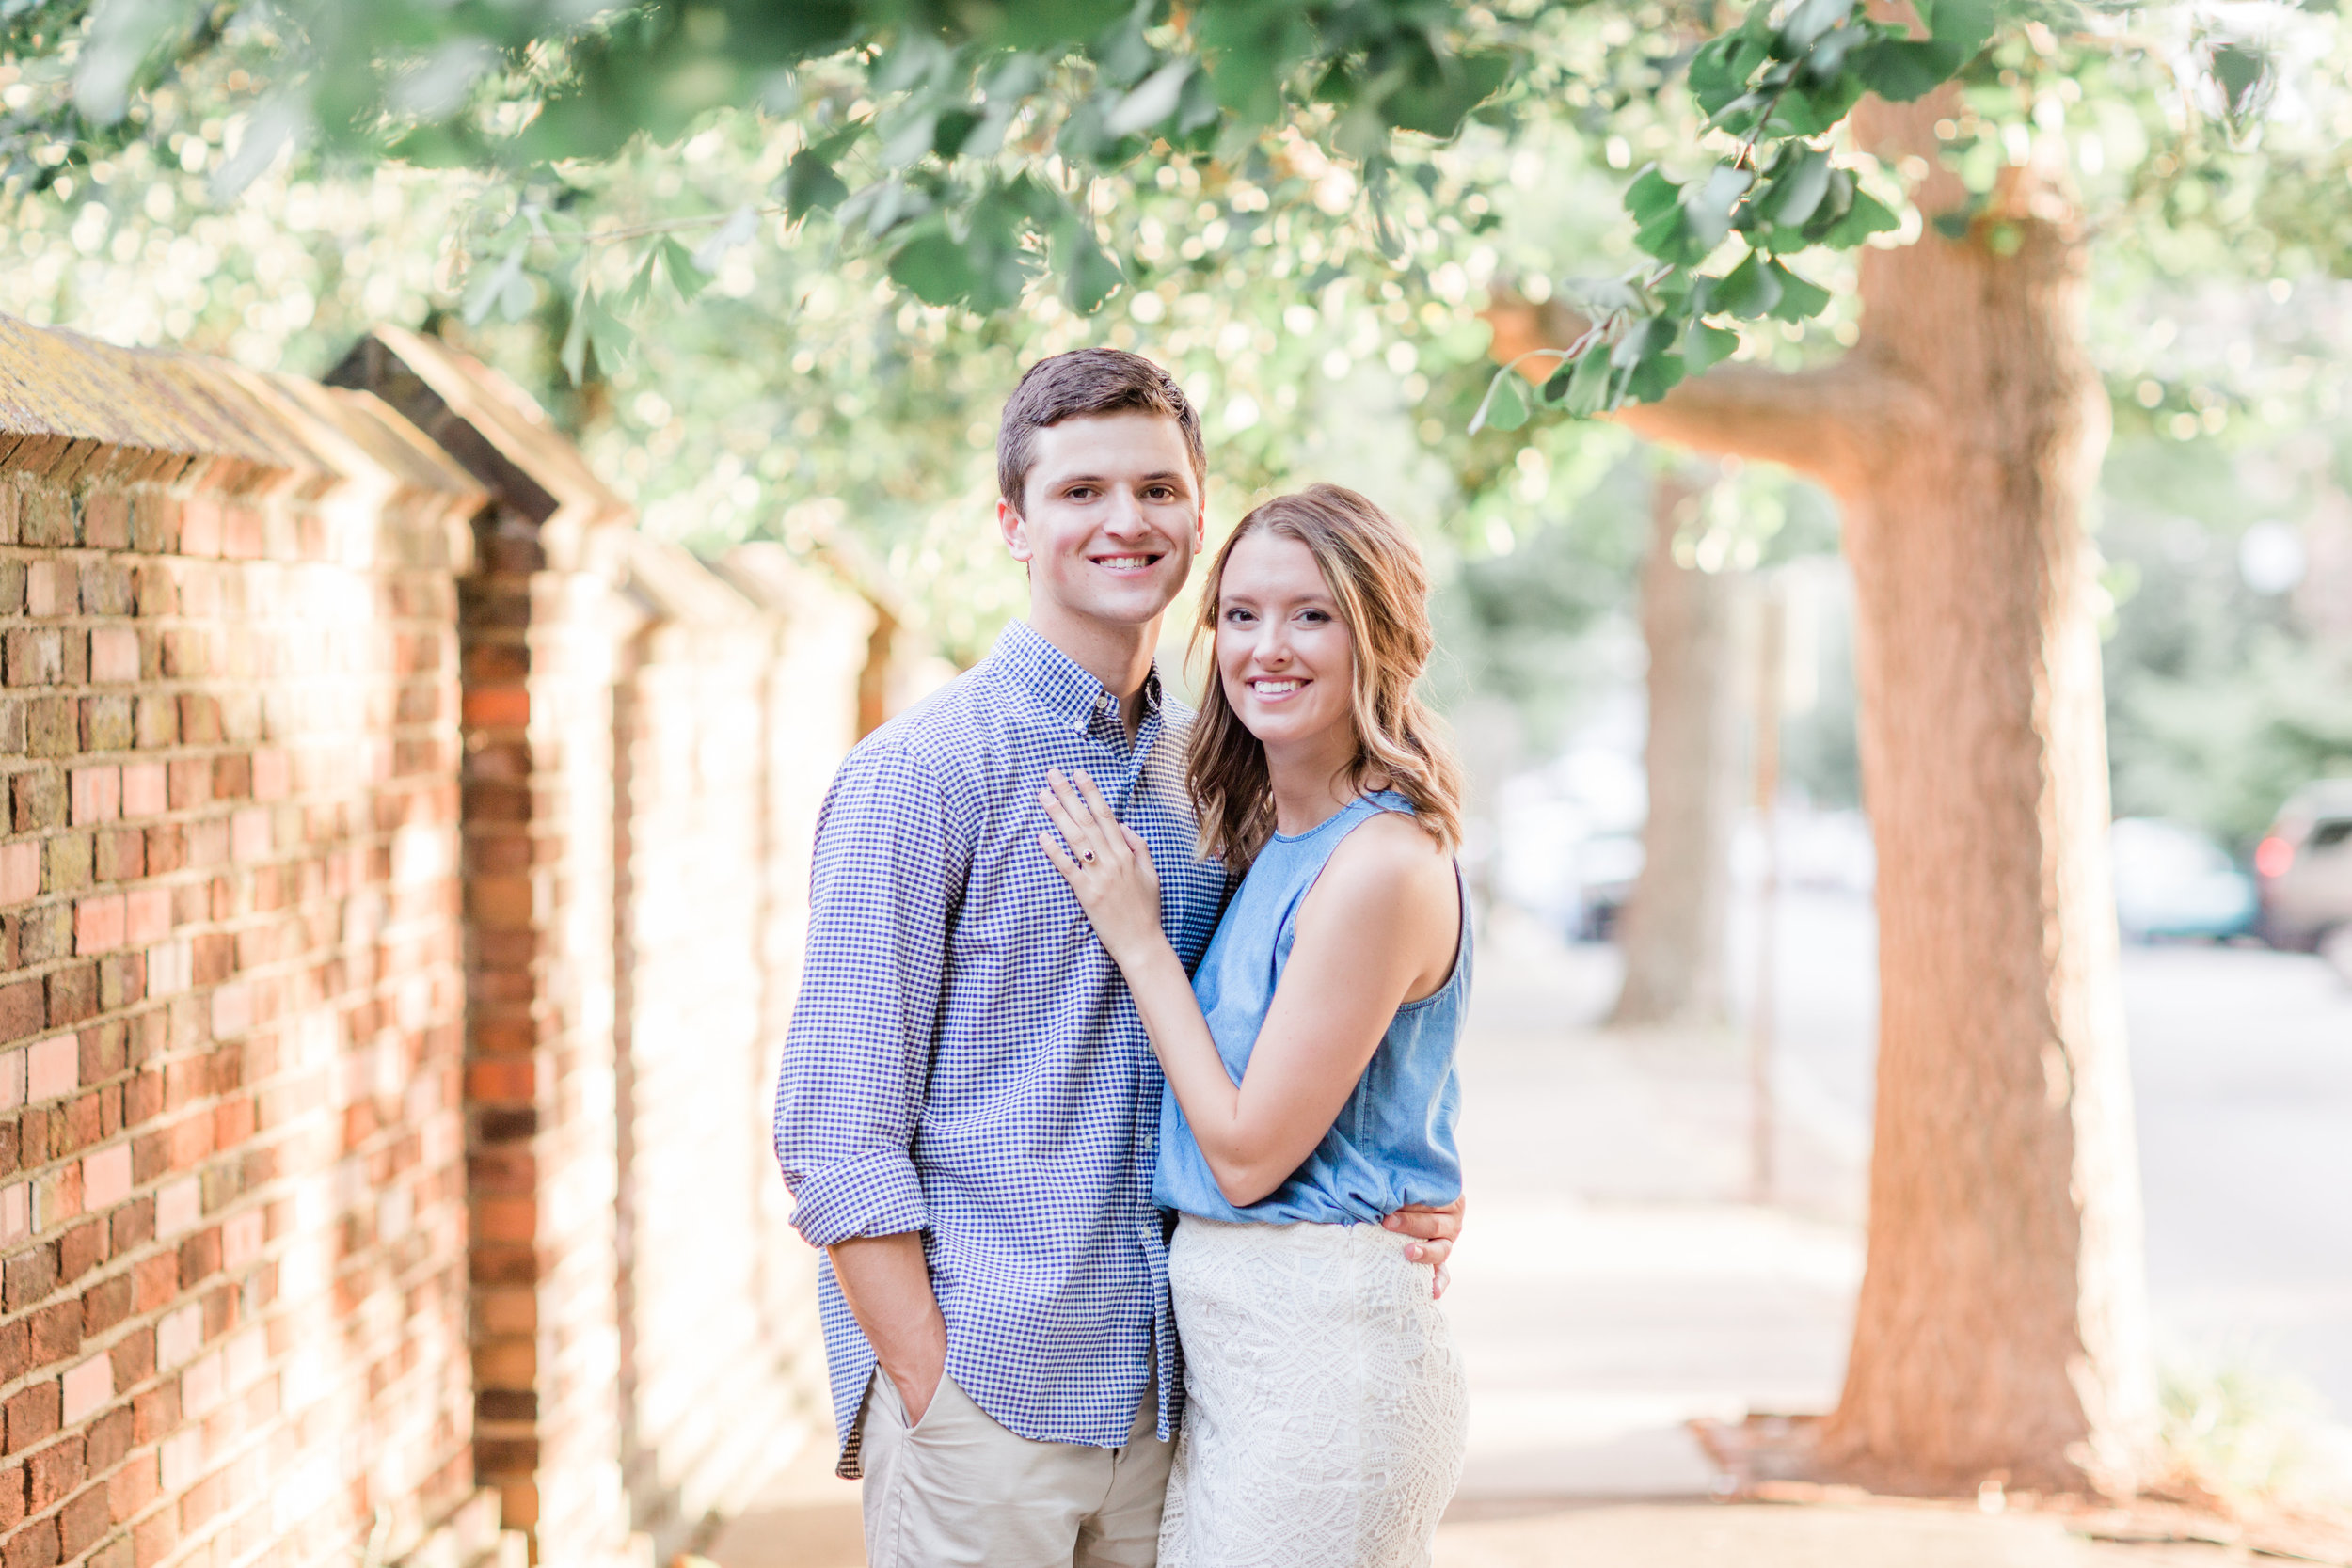 This beautiful Spring 2018 golden hour engagement session was in the heart of downtown Lexington. I hope you all enjoy and stick around for their wedding post in a few weeks.